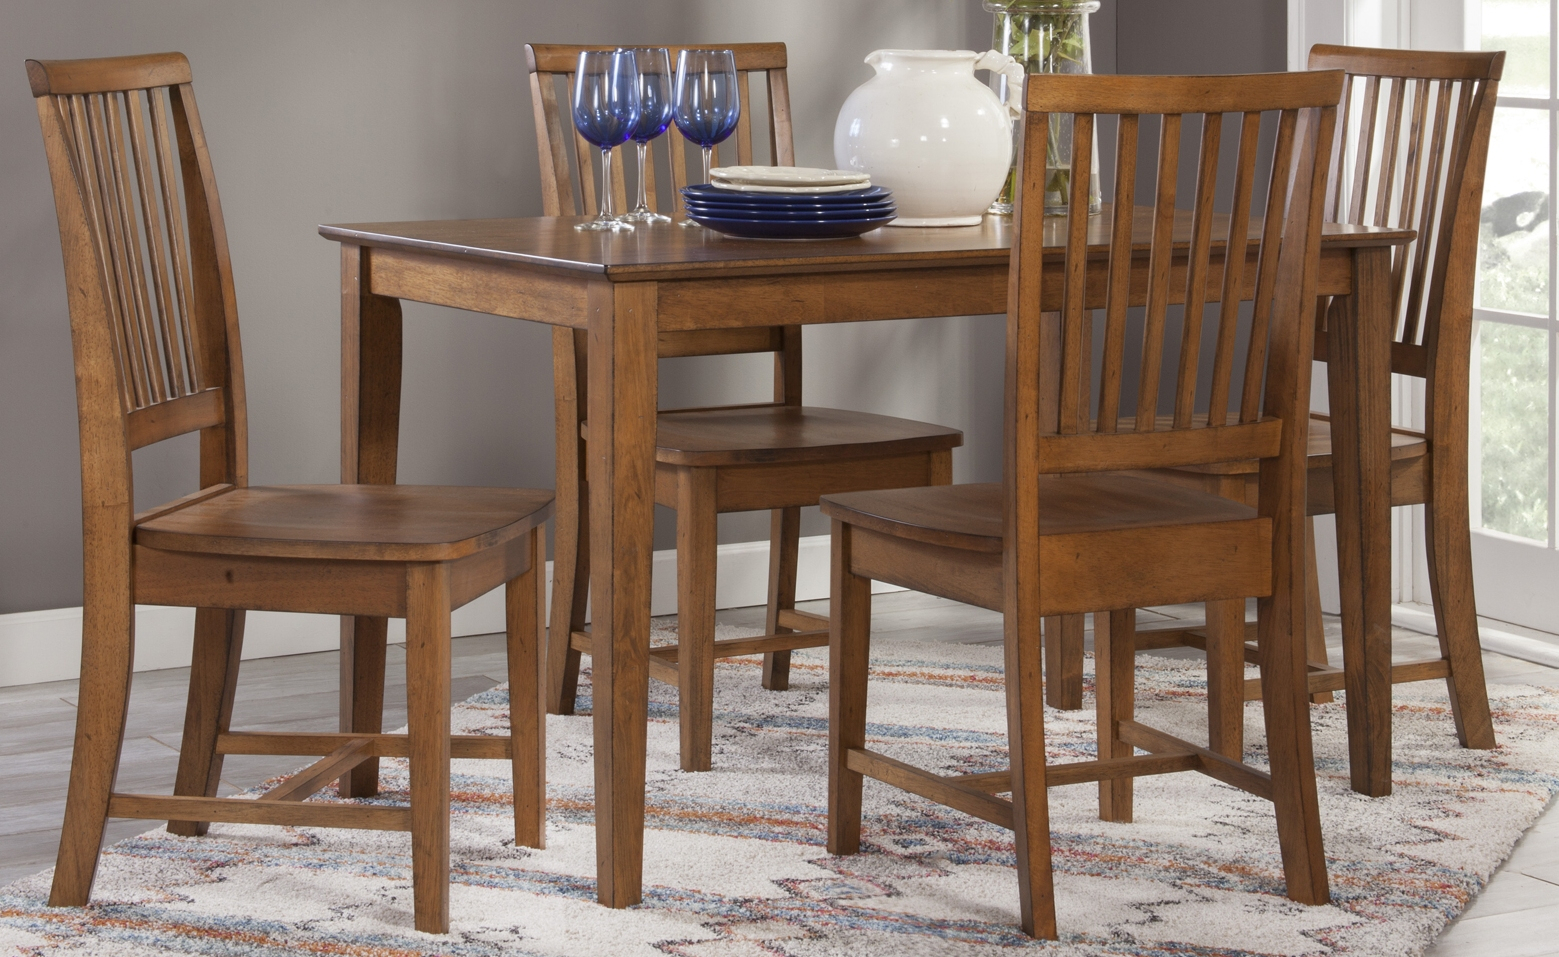 Annie Oakley'S Wood Furniture In Most Up To Date Babbie Butterfly Leaf Pine Solid Wood Trestle Dining Tables (View 11 of 15)